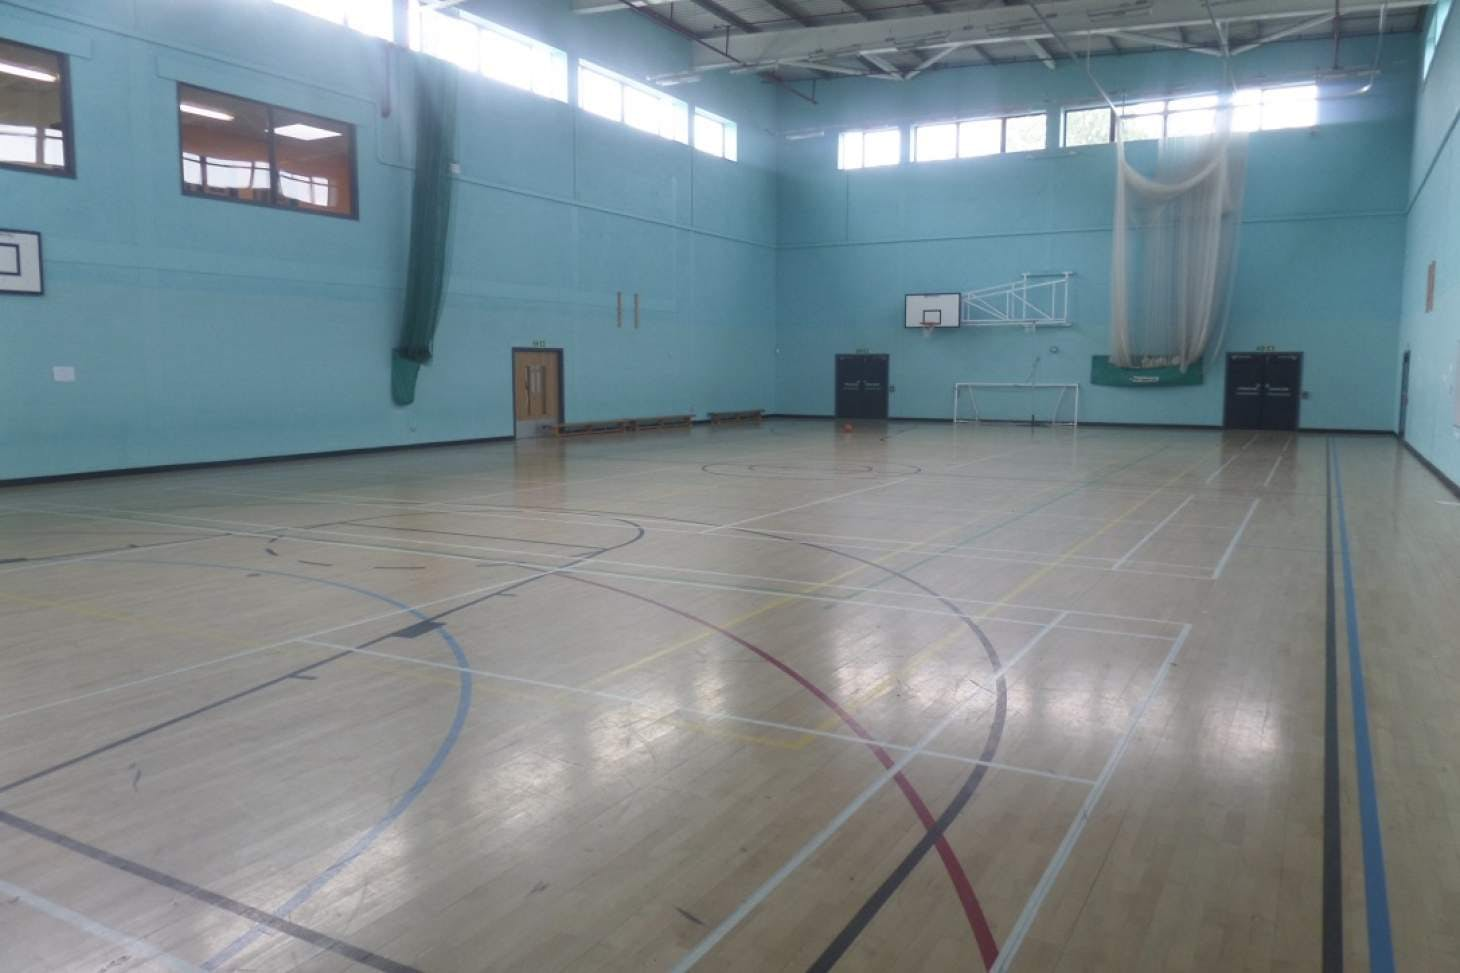 Co-op Academy Leeds Indoor netball court